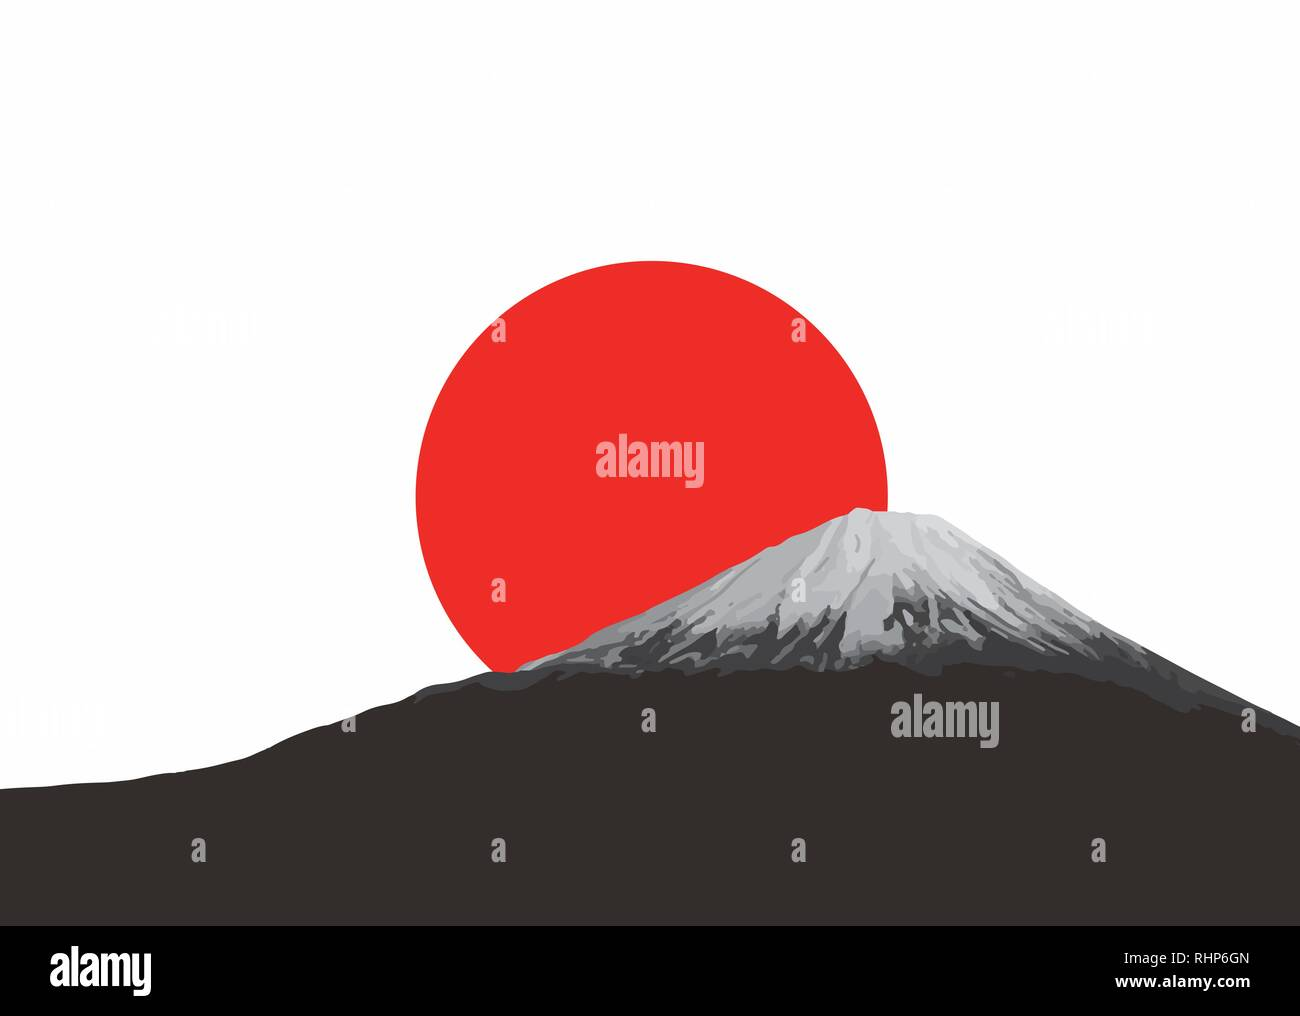 Mount Fuji and red rising sun. Flag and symbol of Japan. - Stock Image